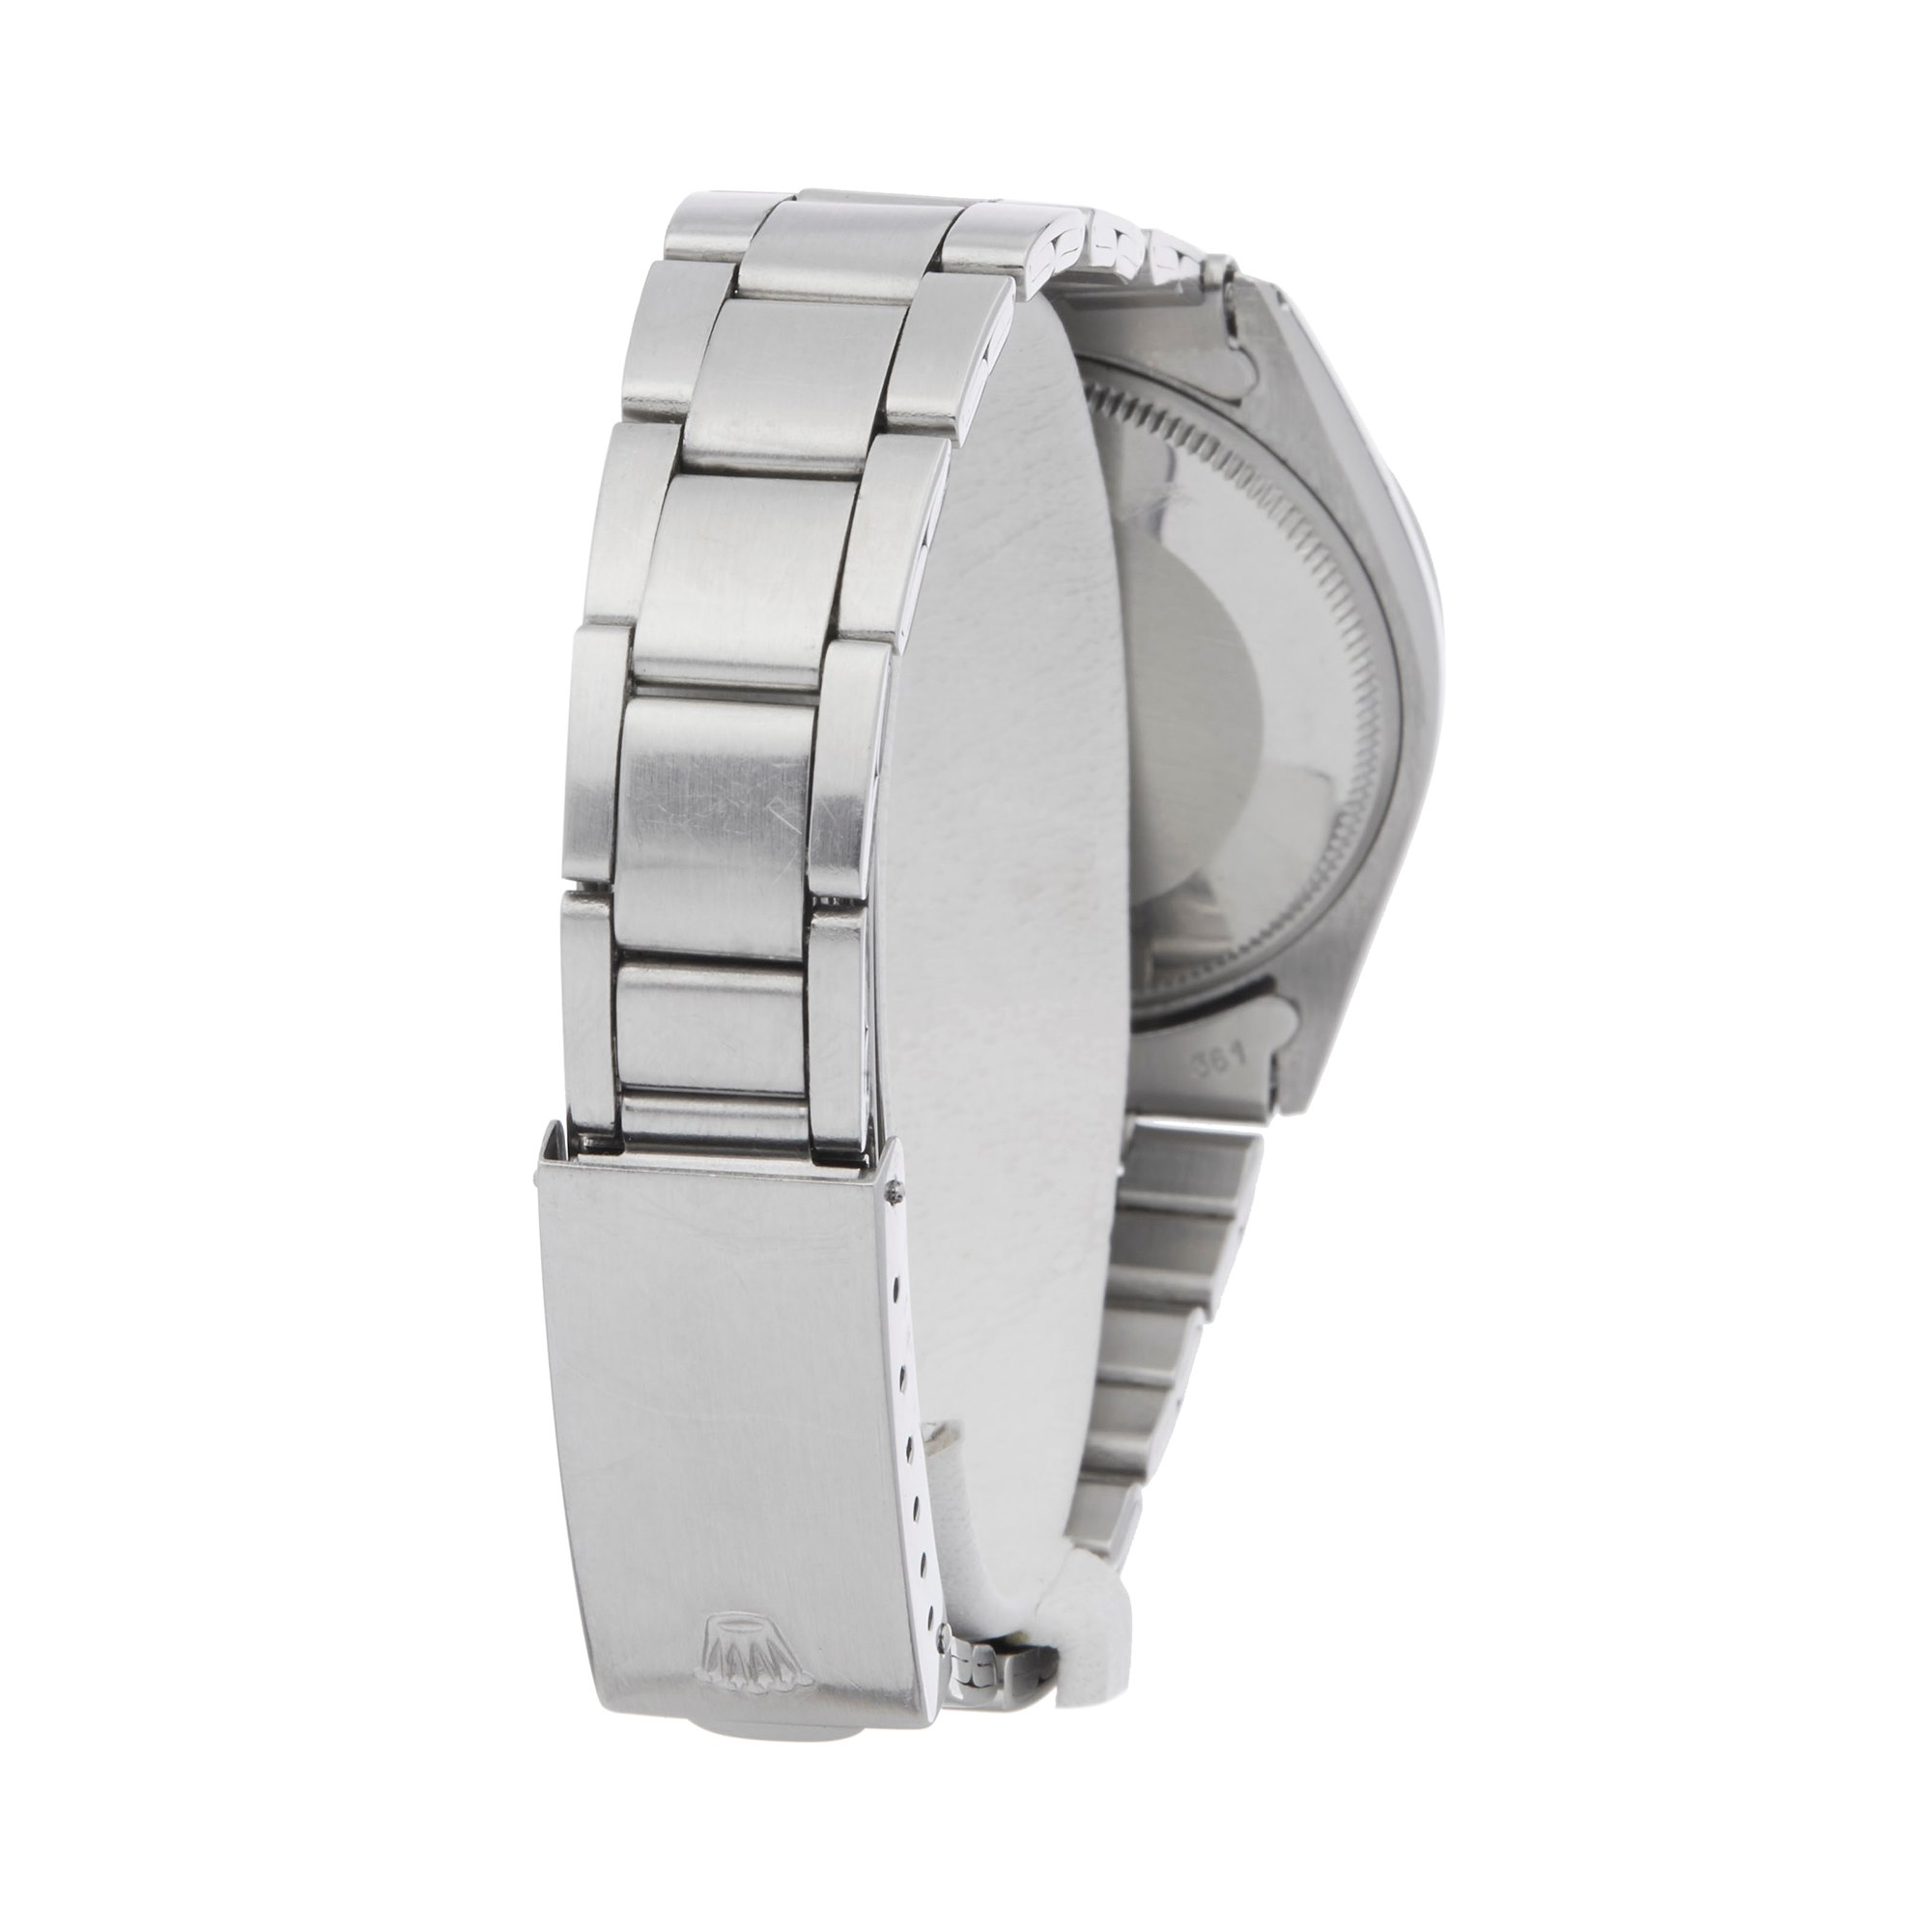 Rolex Explorer I Double Stamped T25 Stainless Steel 5500